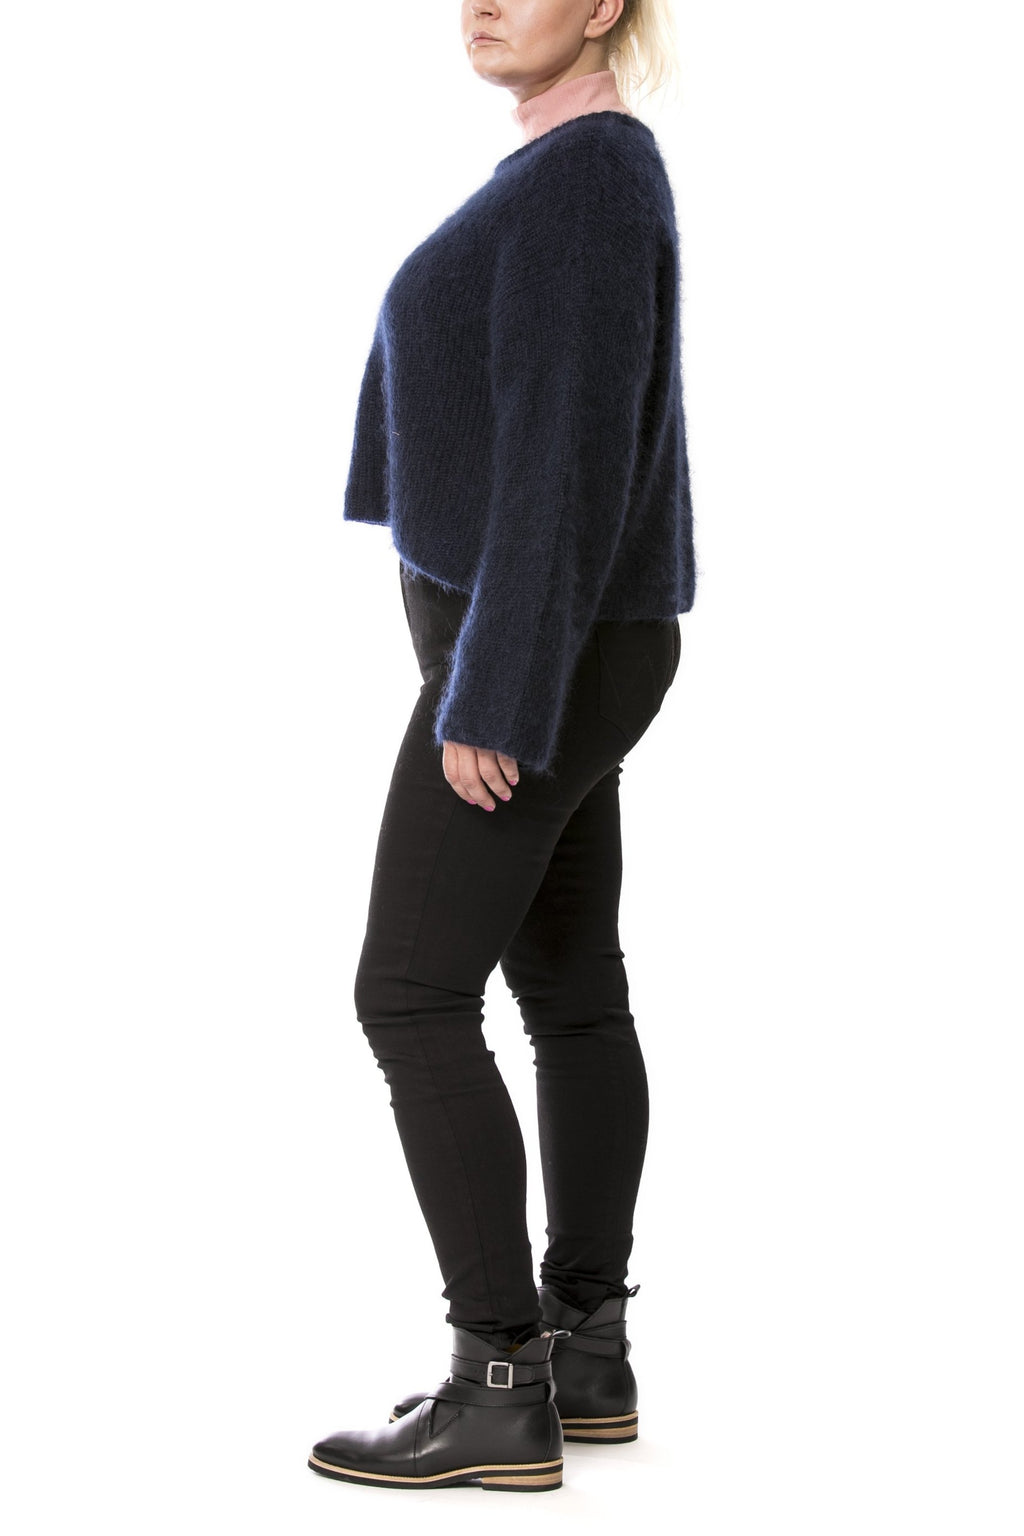 Wide short sweater - blue